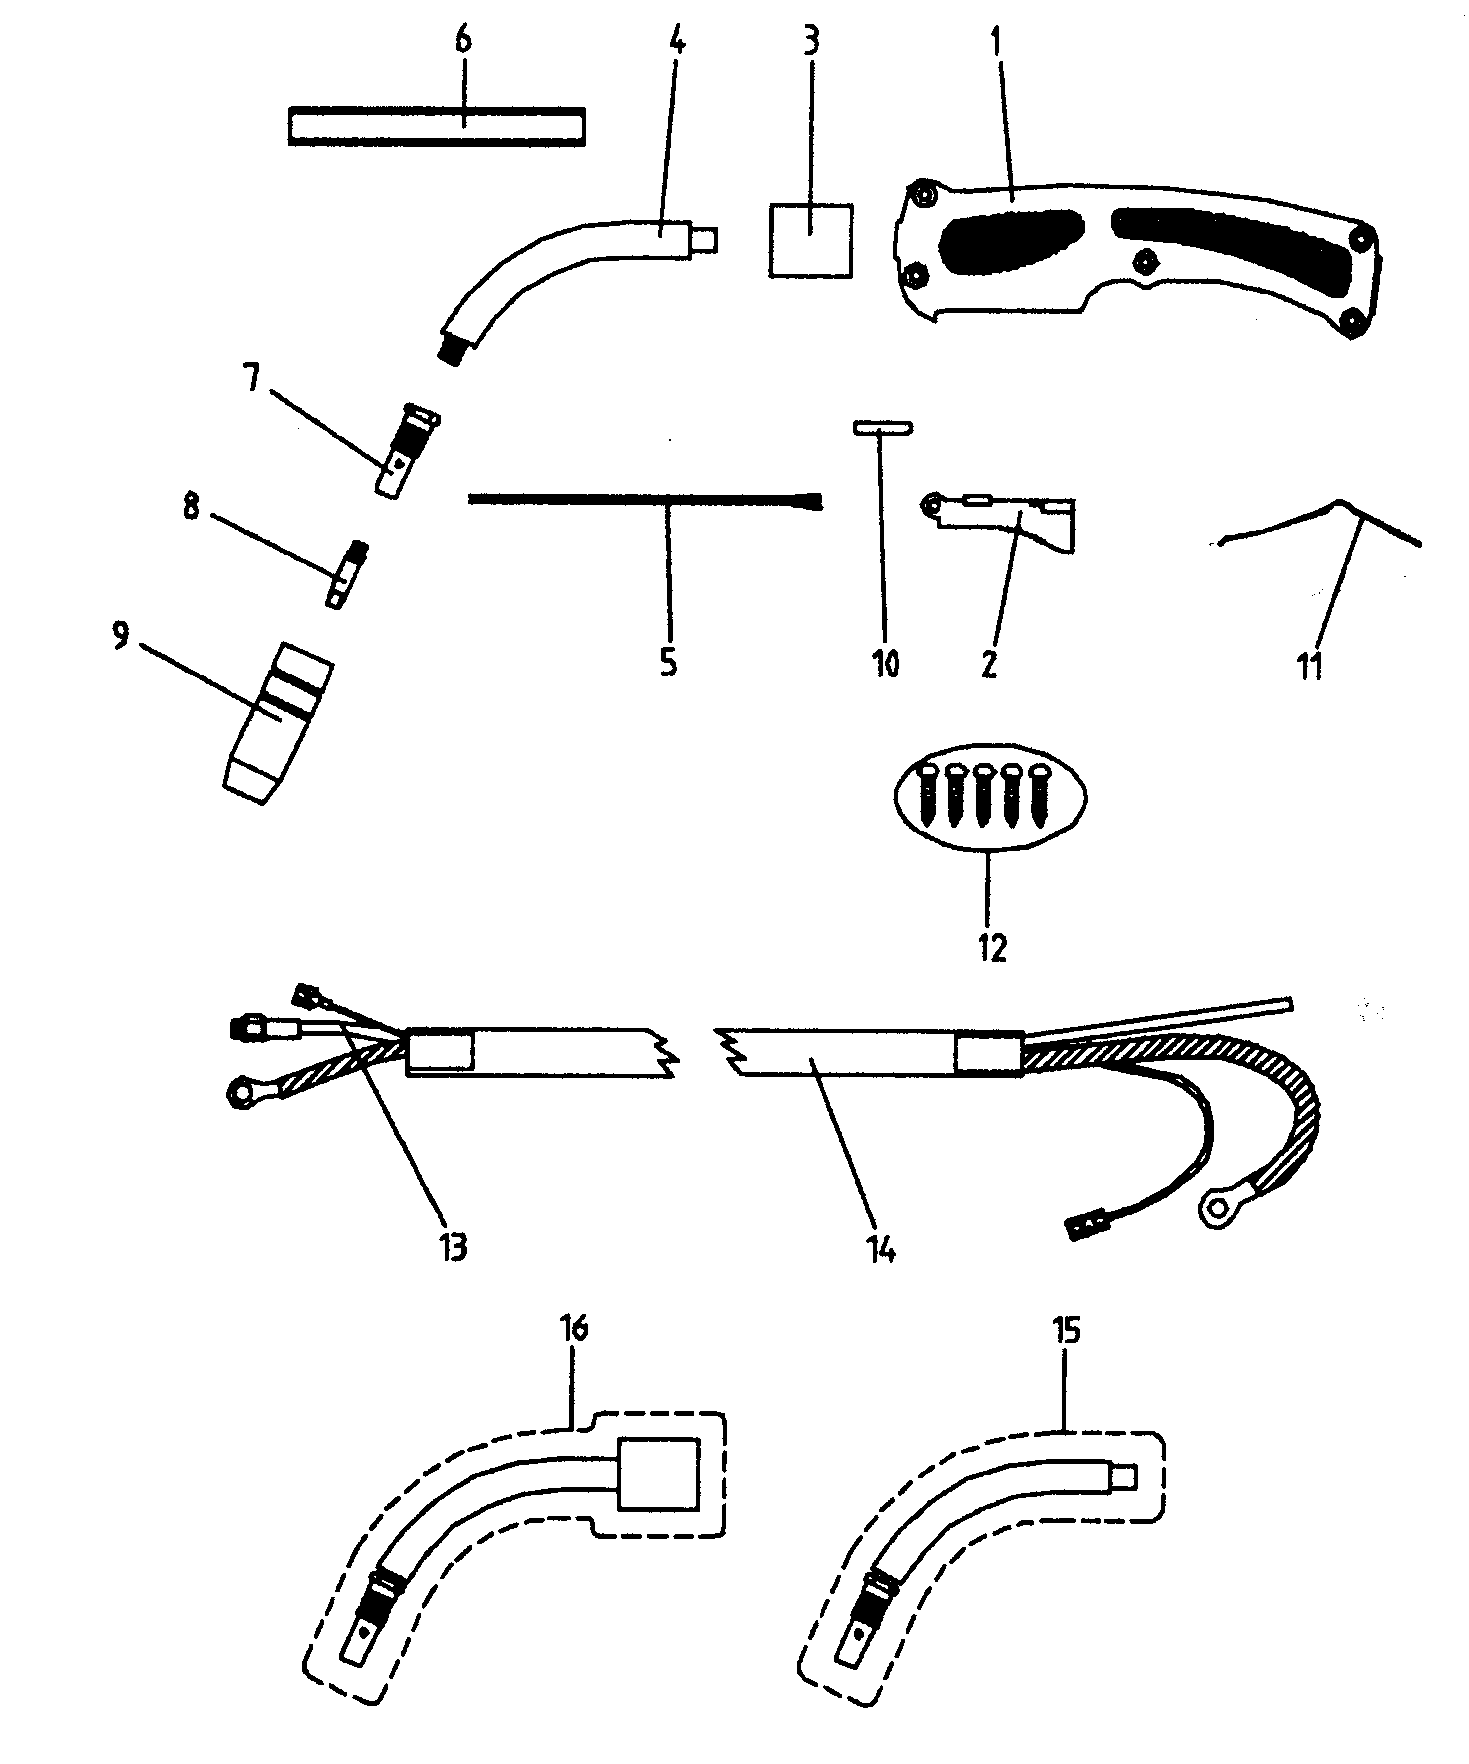 hight resolution of welding gun diagram wiring diagram blogs welding table diagram of welding gun